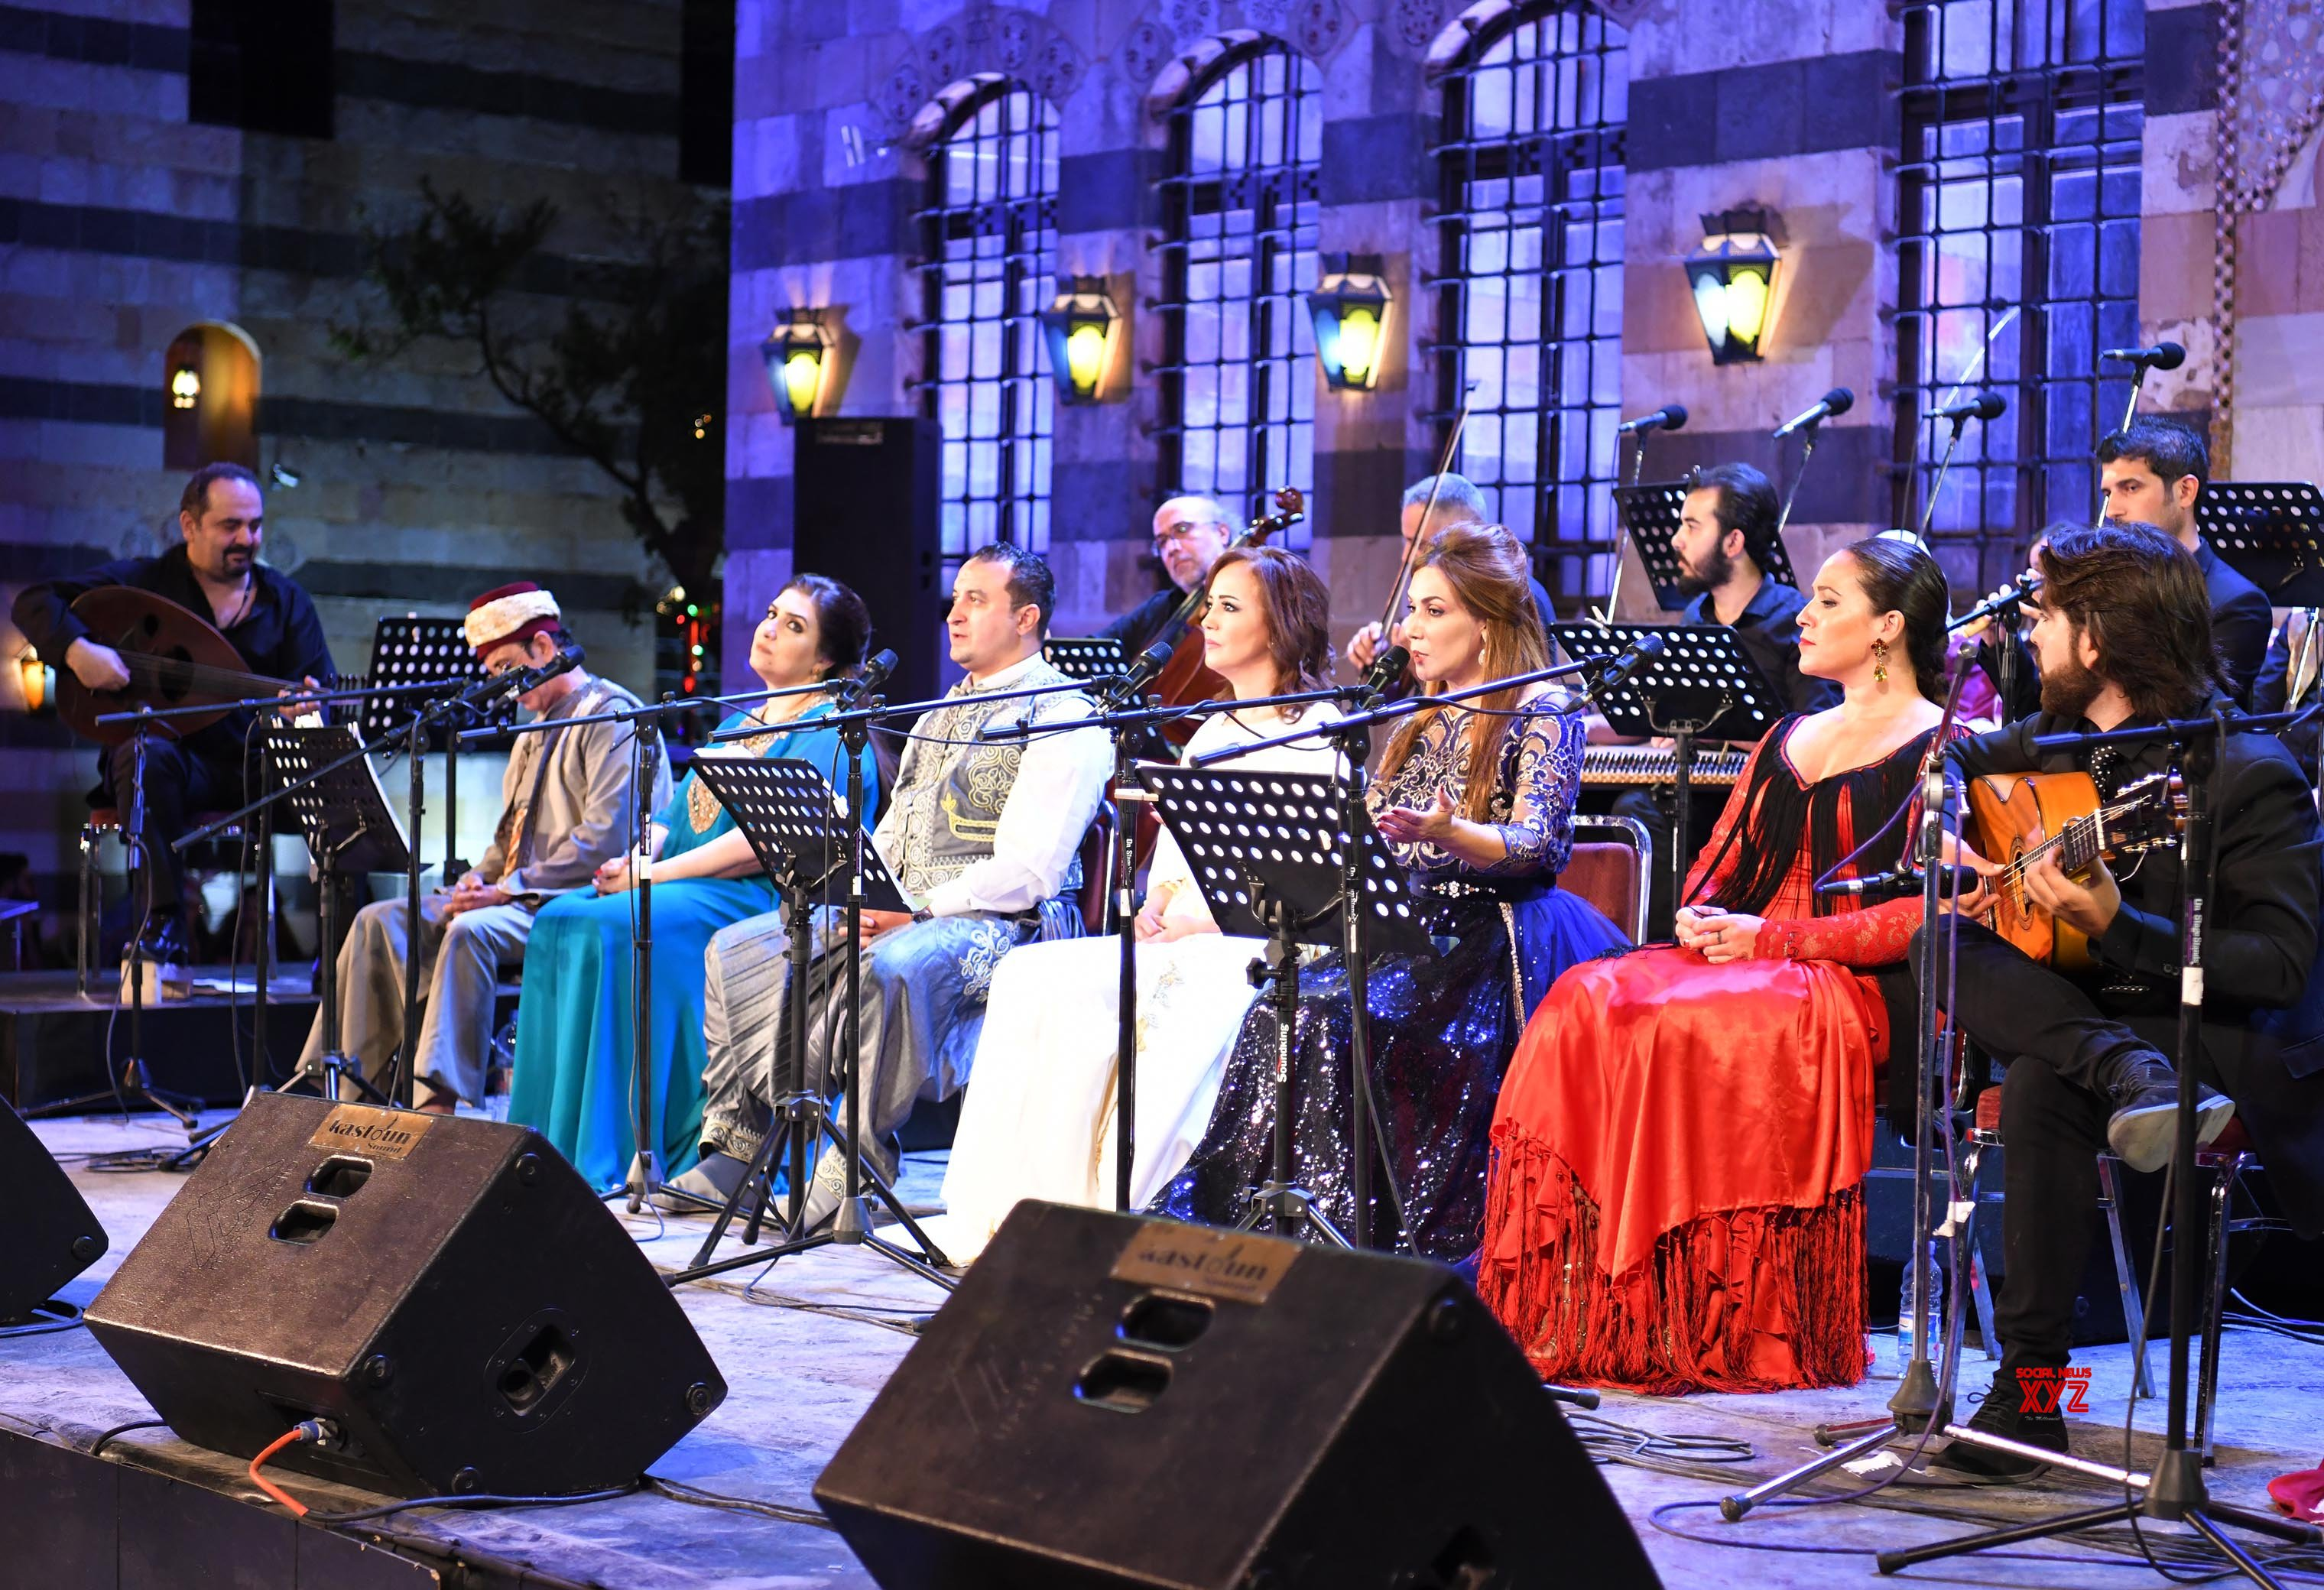 SYRIA - DAMASCUS - FOLKLORIC CONCERT #Gallery